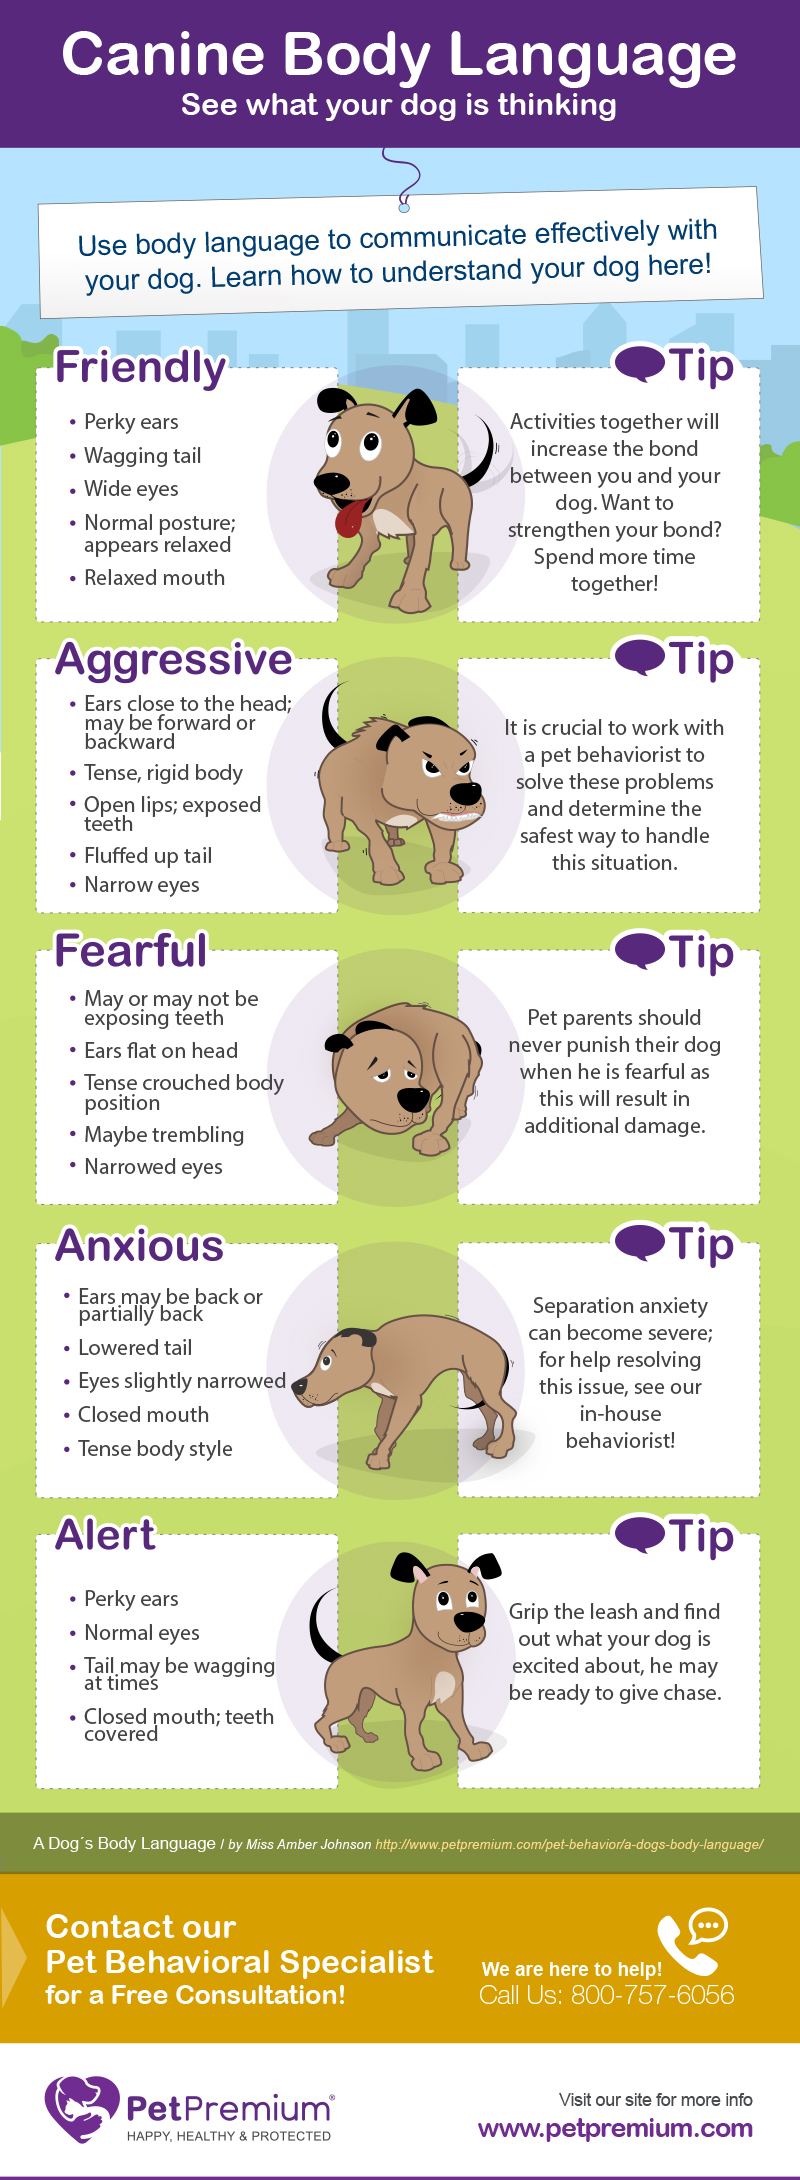 Learn More About Canine Body Language - PetPremium's Infographic